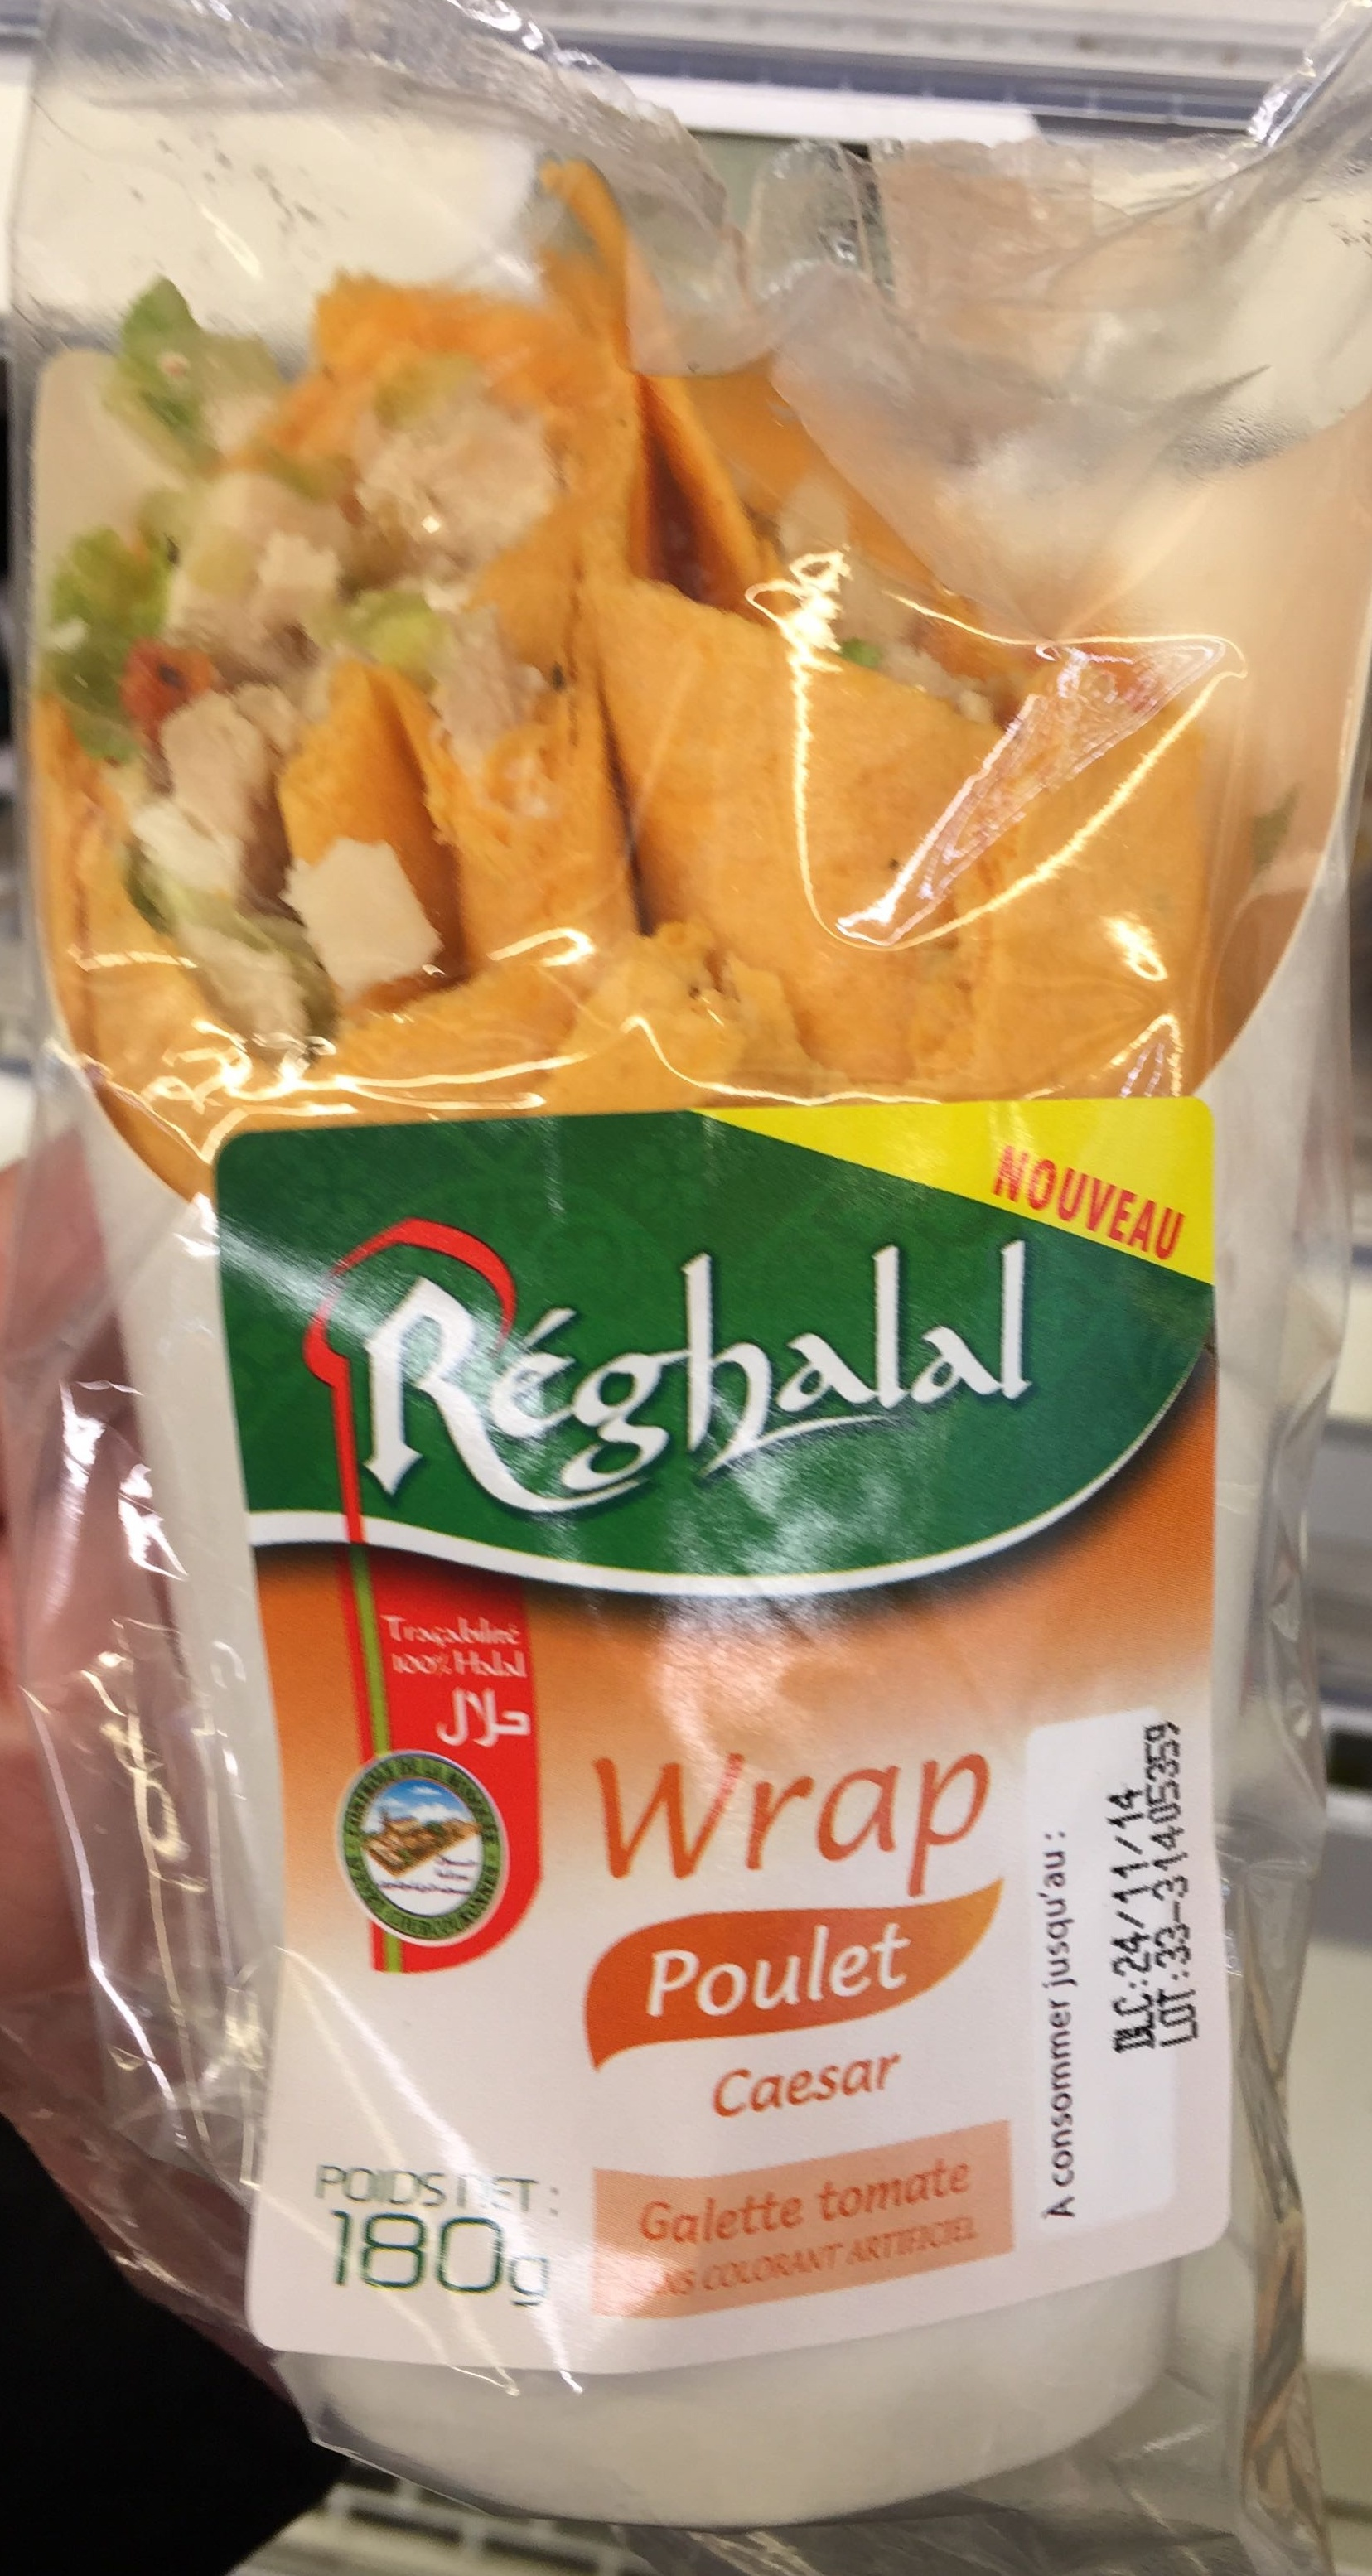 Wrap Poulet Caeser Galette Tomate - Product - fr